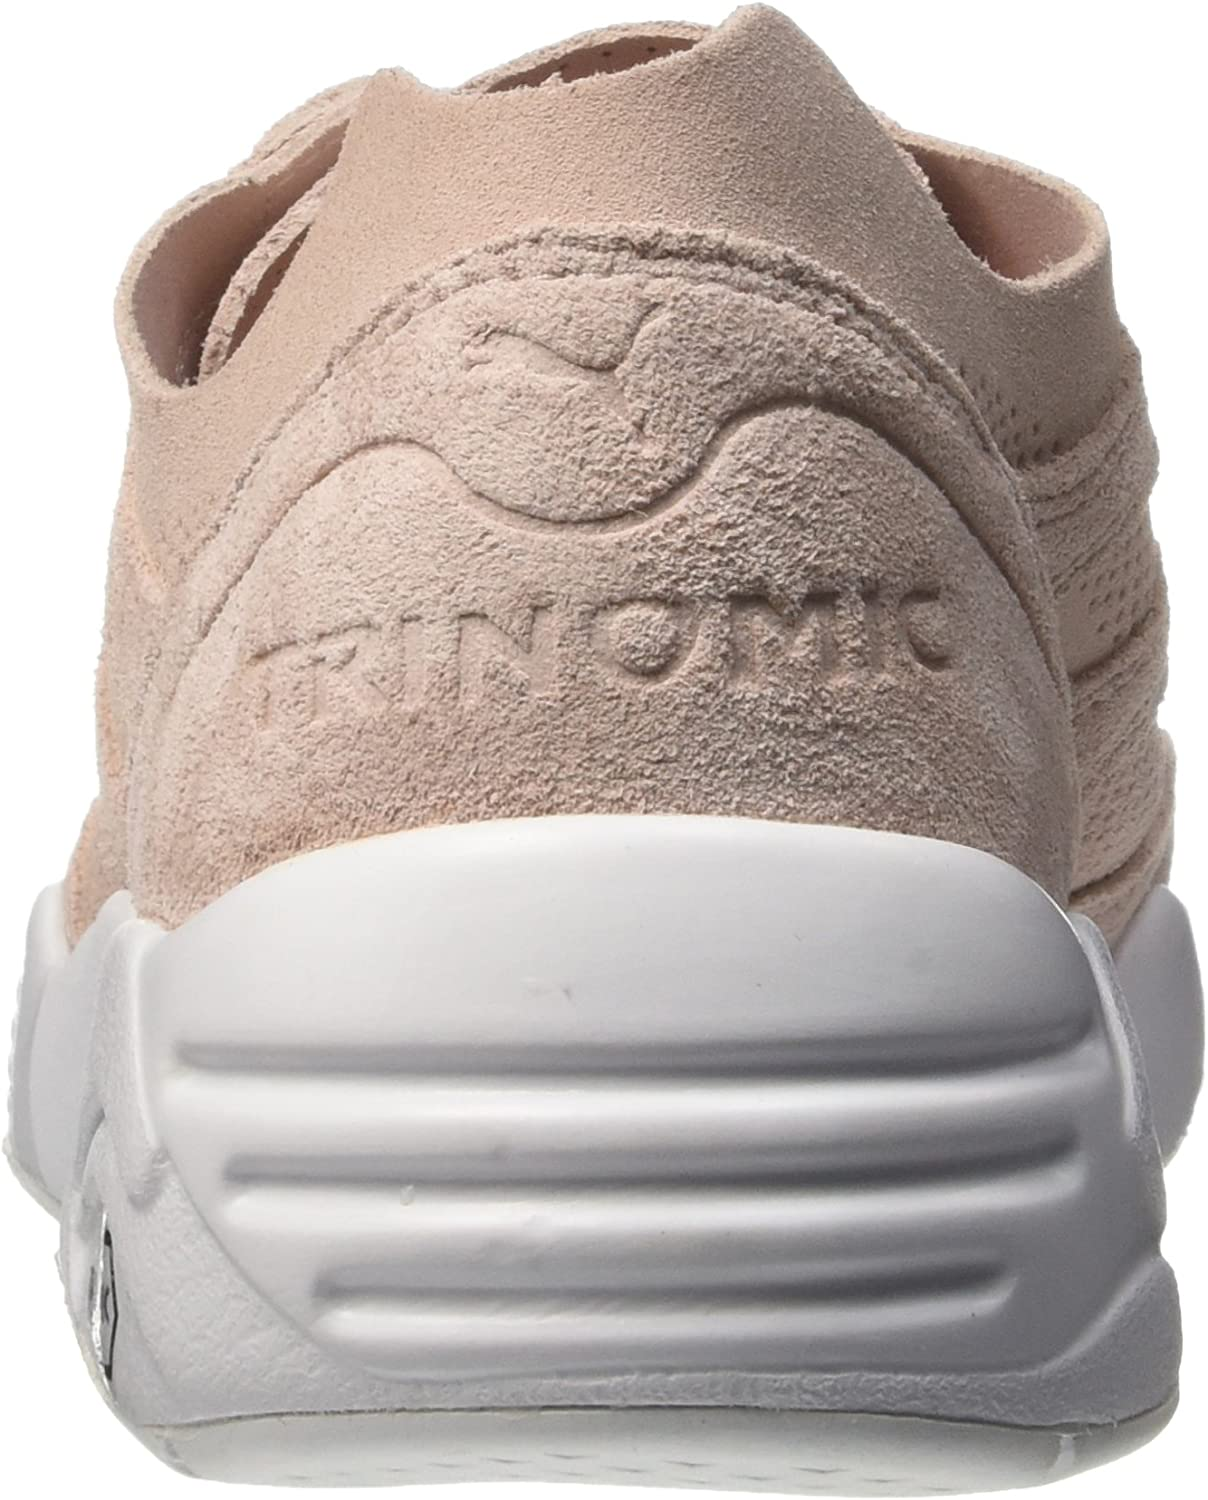 Puma Ftrack R698 Soft Pack, Sneakers Basses Mixte Adulte Rose Pink Dogwood White